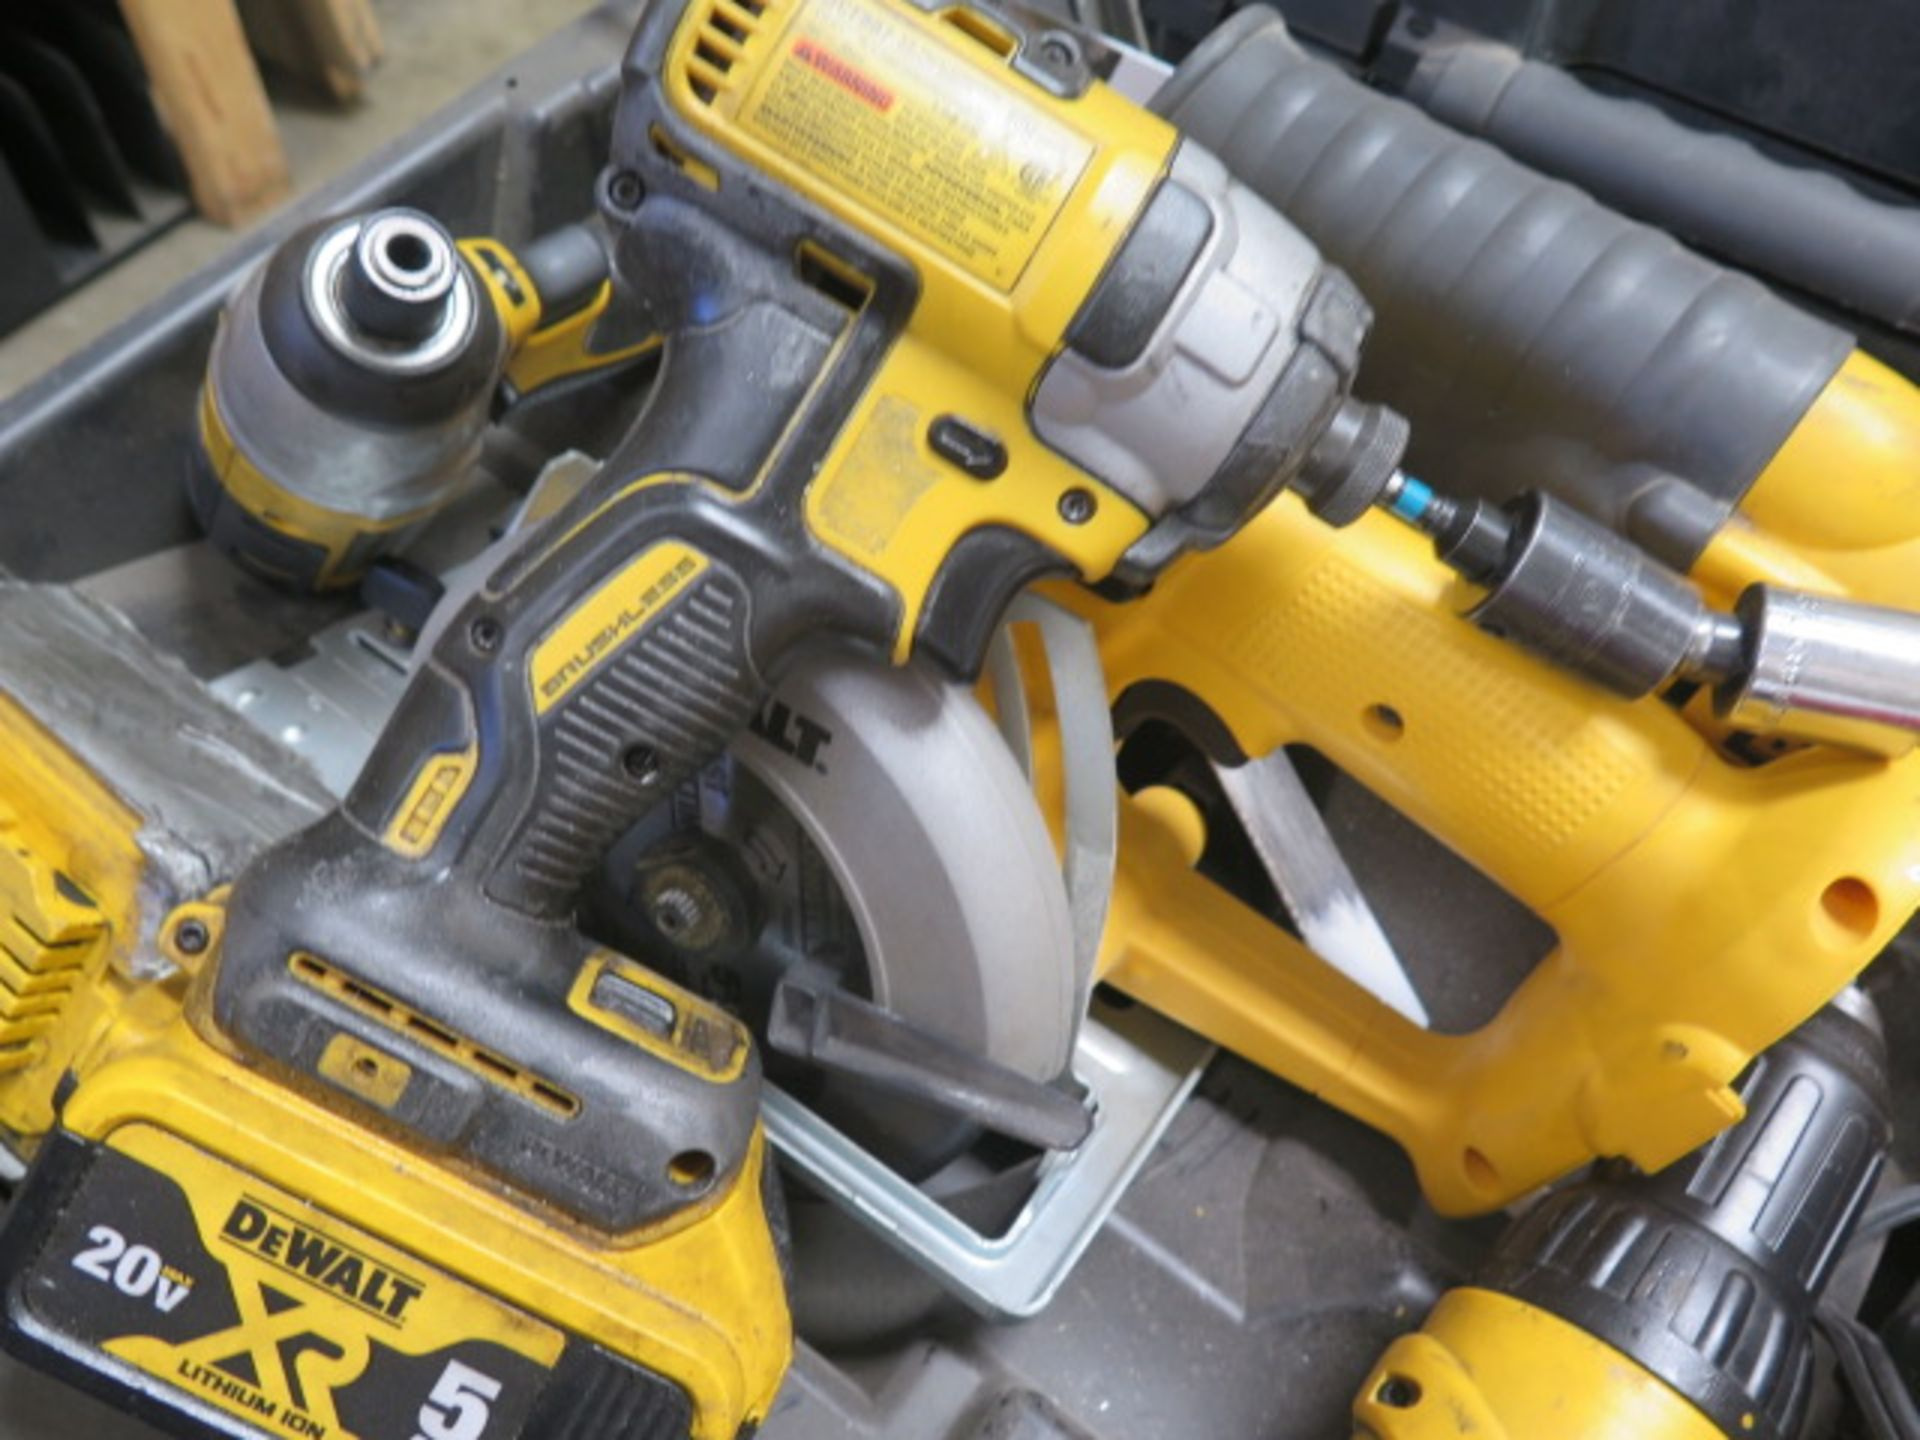 DeWalt Cordless Tools w/ Charger (SOLD AS-IS - NO WARRANTY) - Image 8 of 9